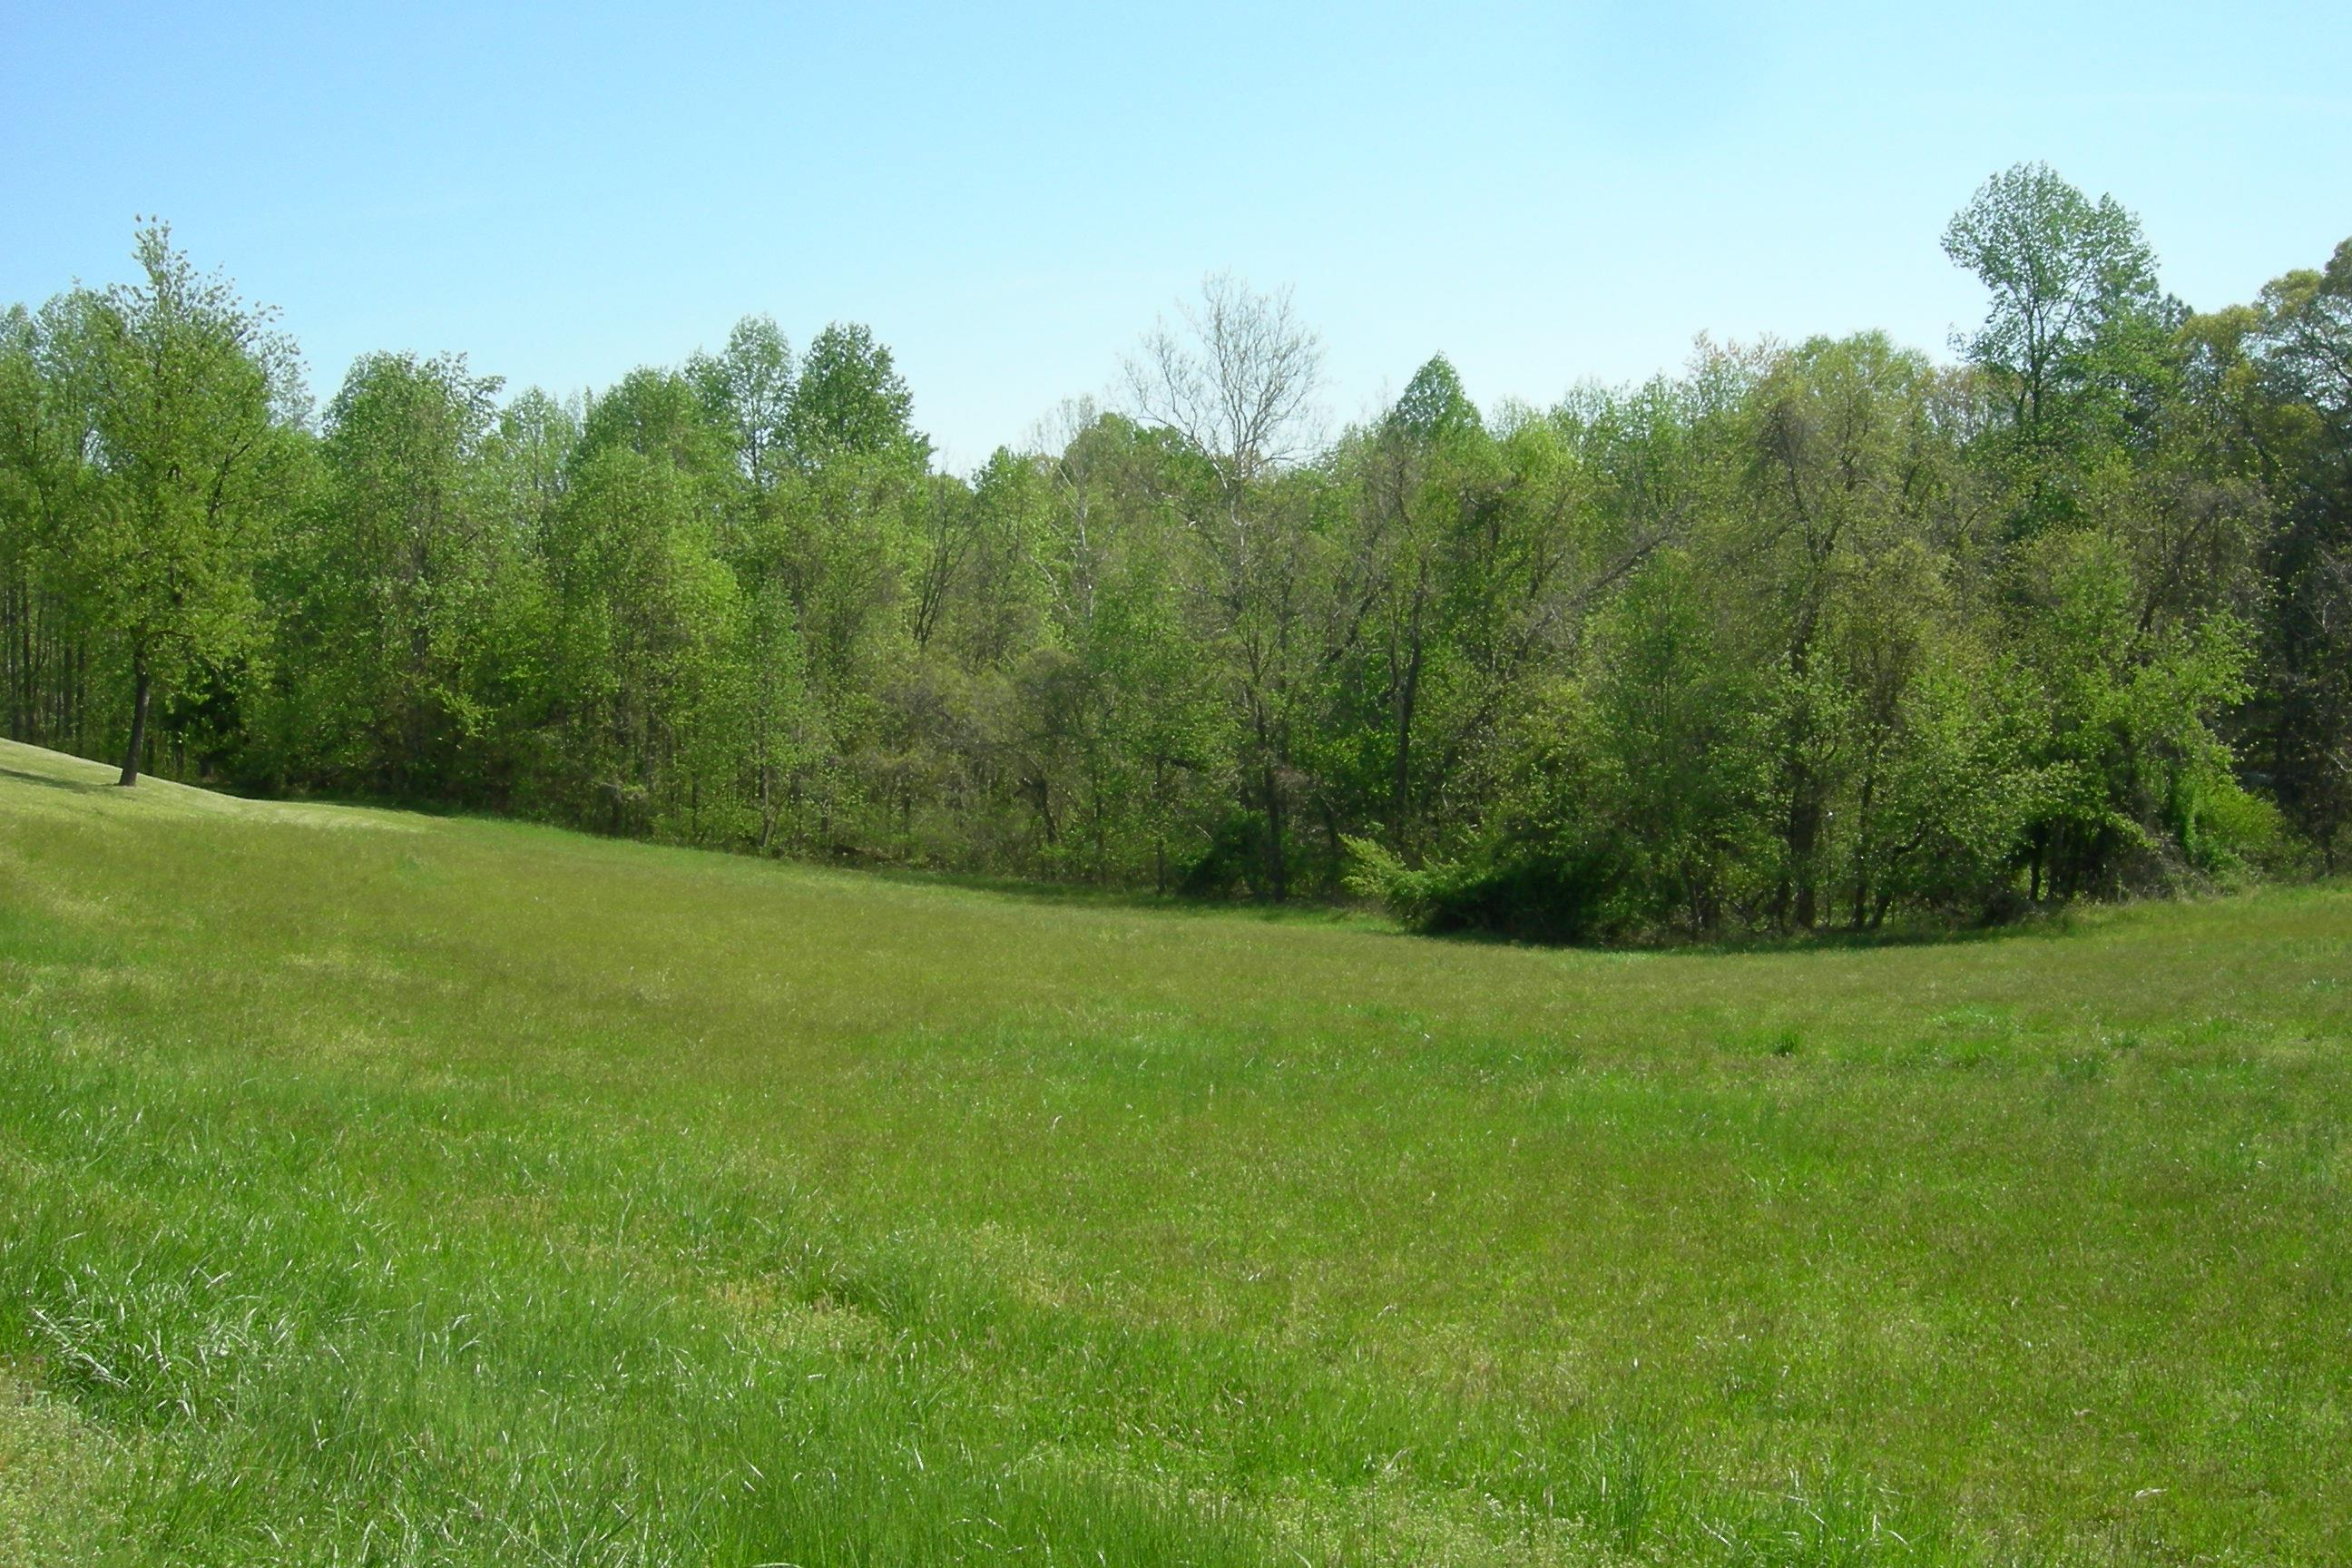 Open Space and Agriculturally Zoned Property for Sale in Rural Southern Maryland Areas